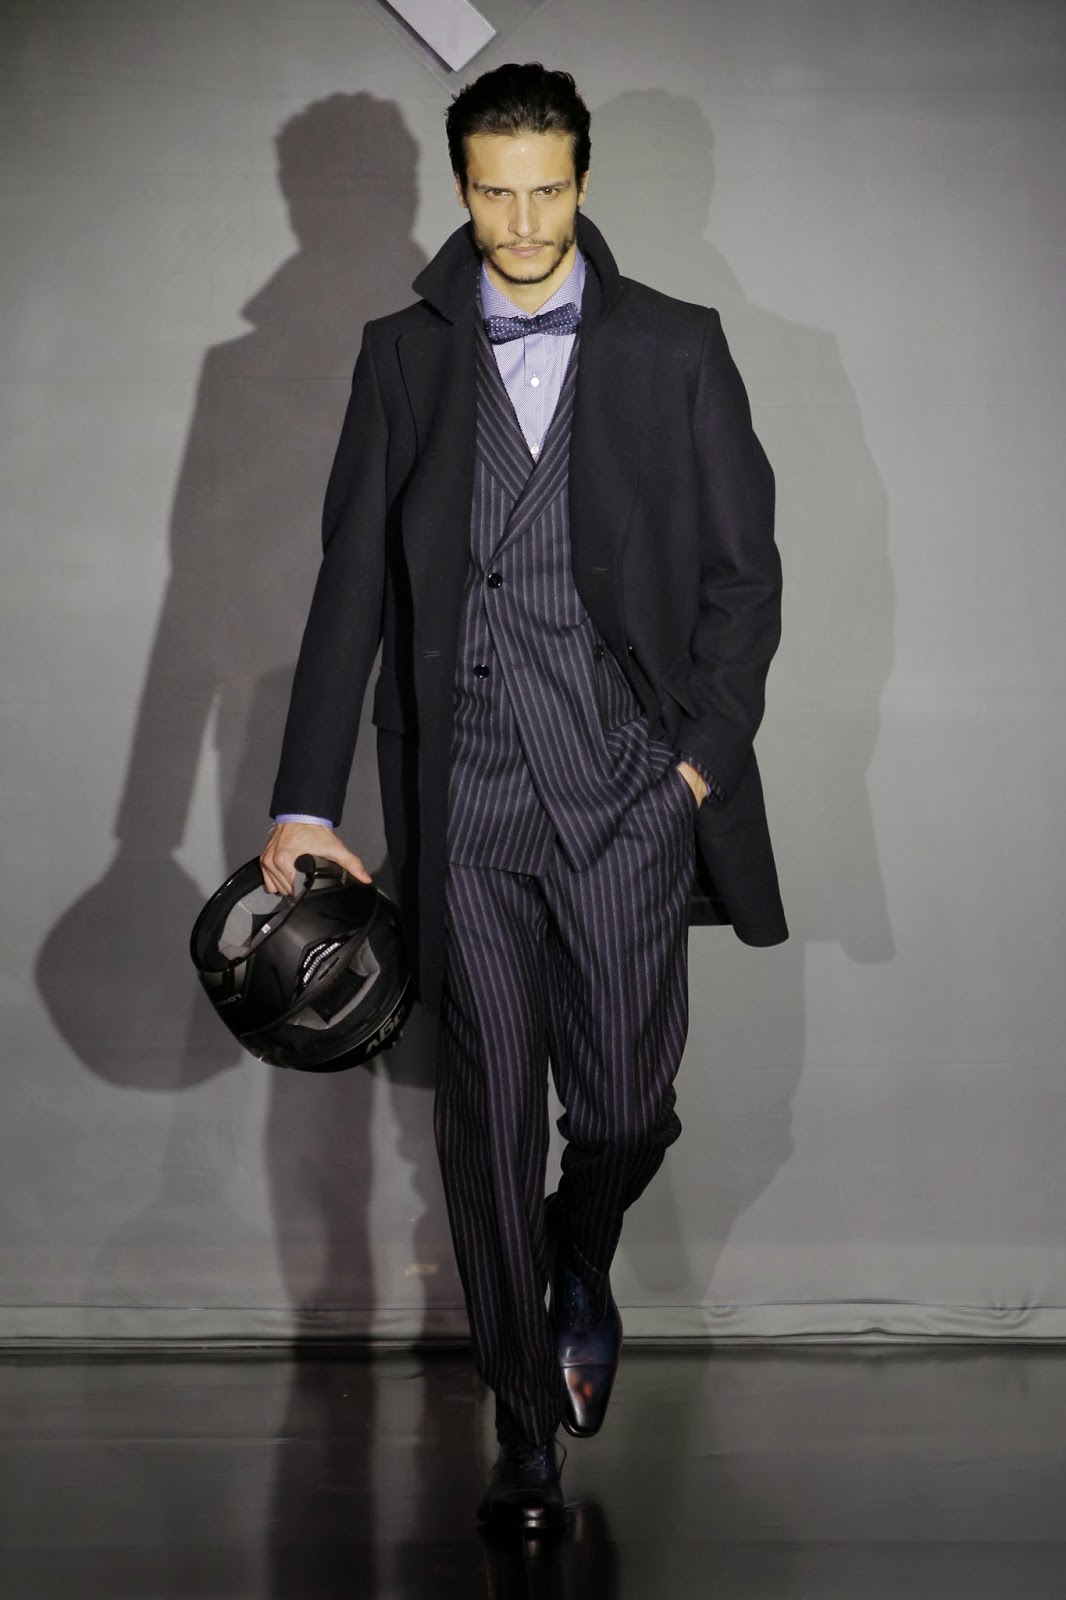 MFSHOW_men_autumn_winter_2014_emidio_tucci_trendybow_01